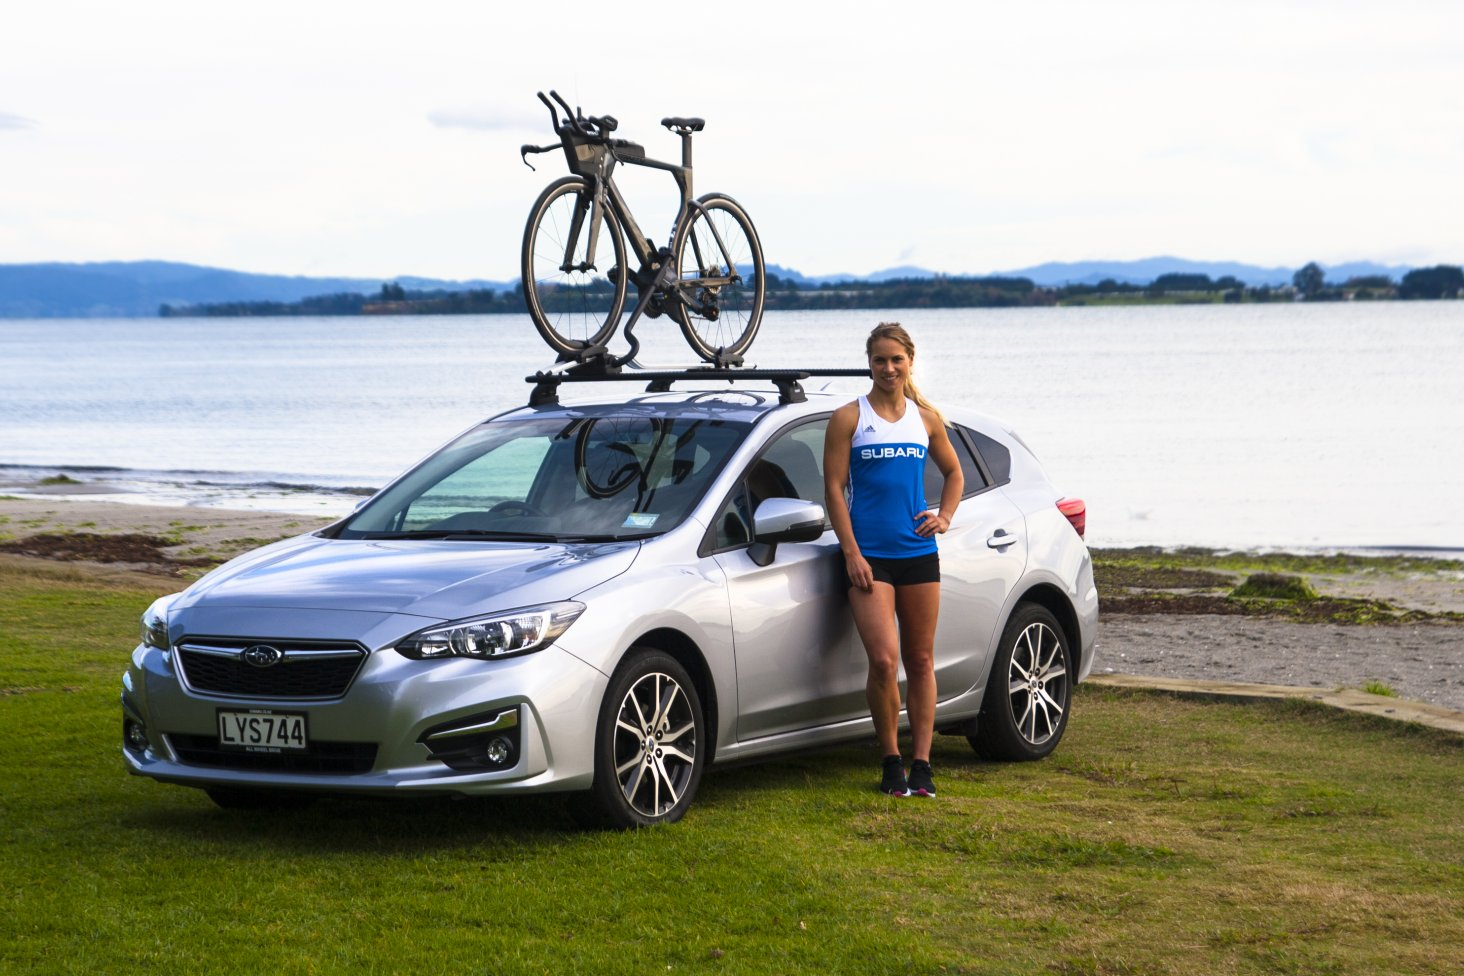 New Subaru brand amabassador Hannah Wells with her Subaru Impreza. Photo Credit: Paul Brunskill